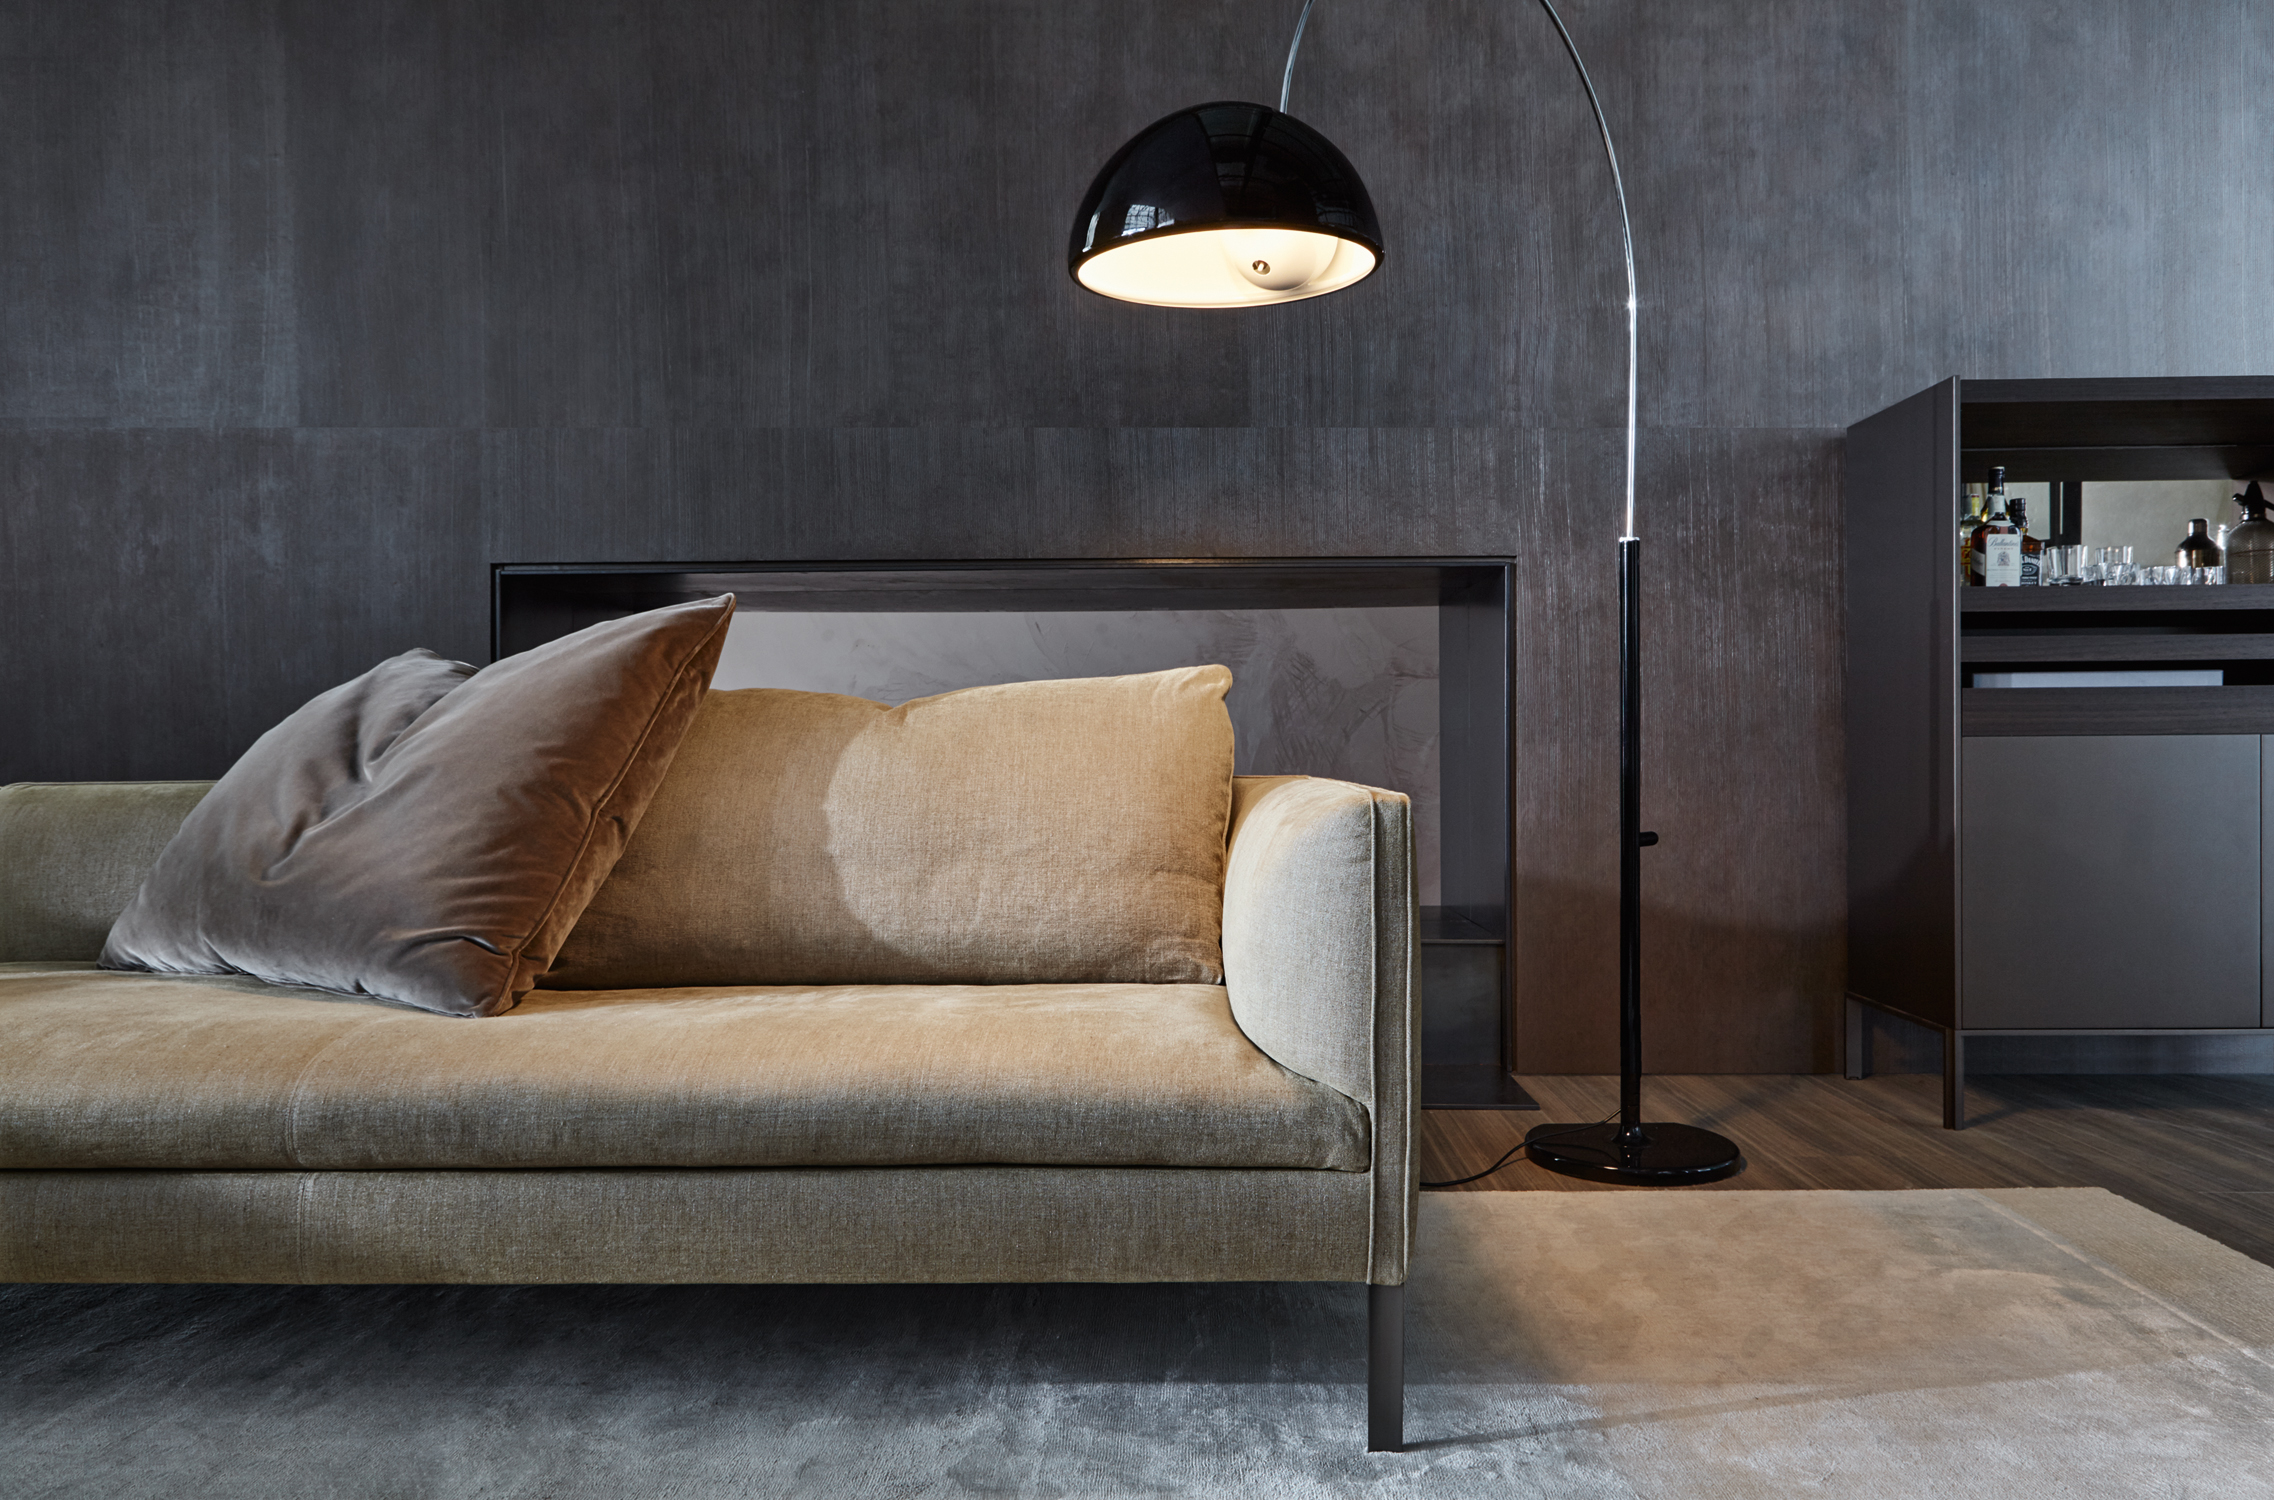 Paul Sofa By Vincent Van Duysen For Molteni Amp C Sohomod Blog